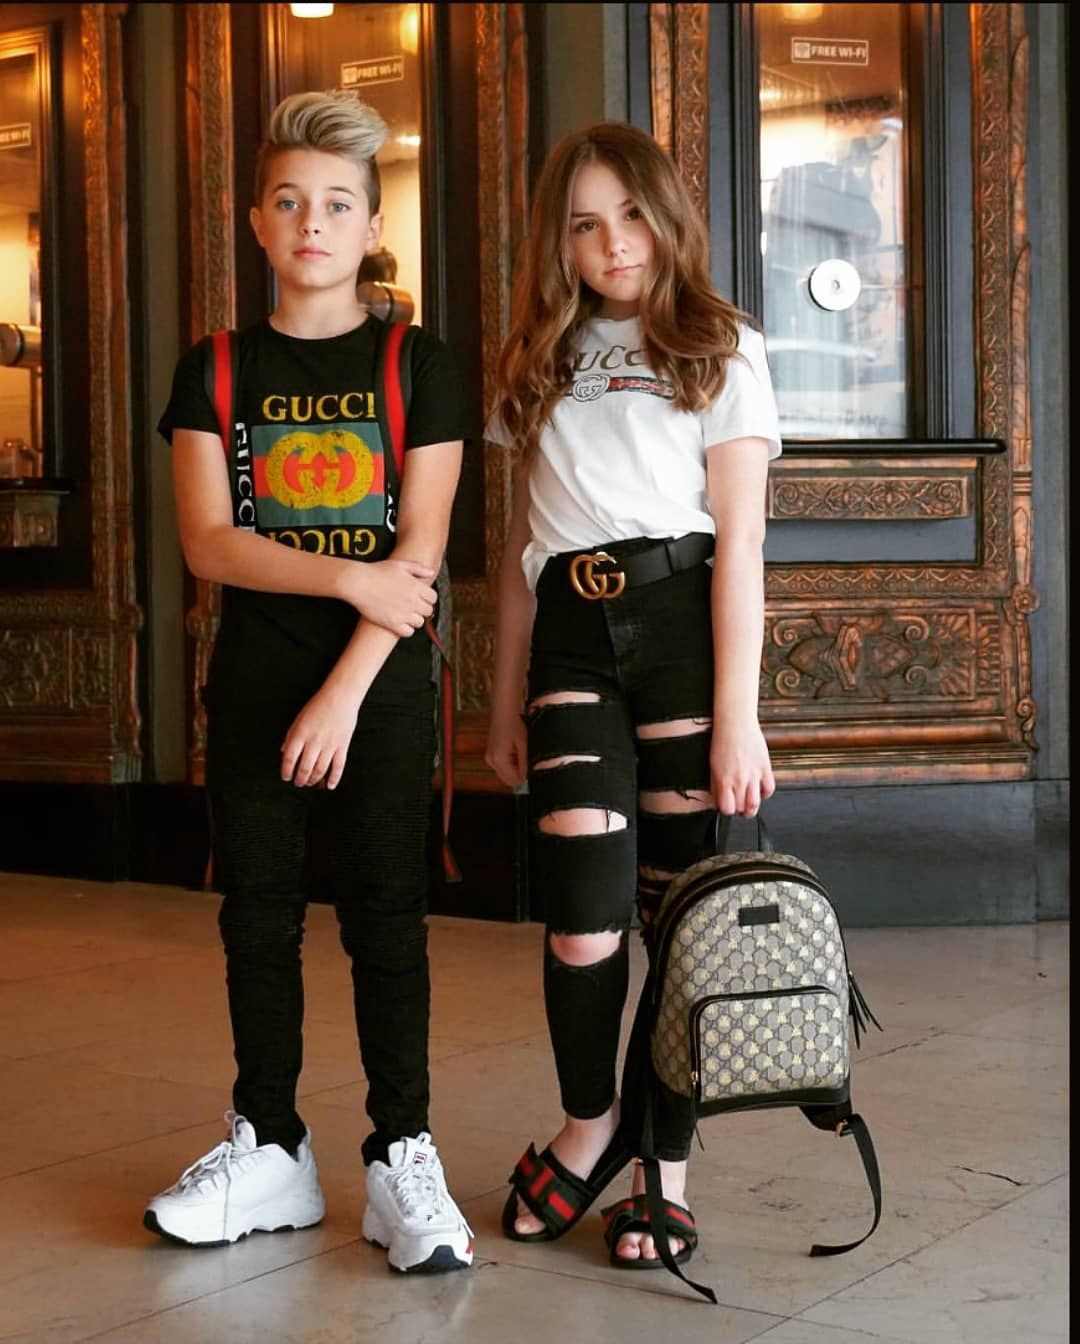 Watch The Best Youtube Videos Online Gucci Gang My Pavin Piperrockelle Piperazzi Piperazzif Girls Outfits Tween Girls Fashion Clothes Kids Outfits Girls